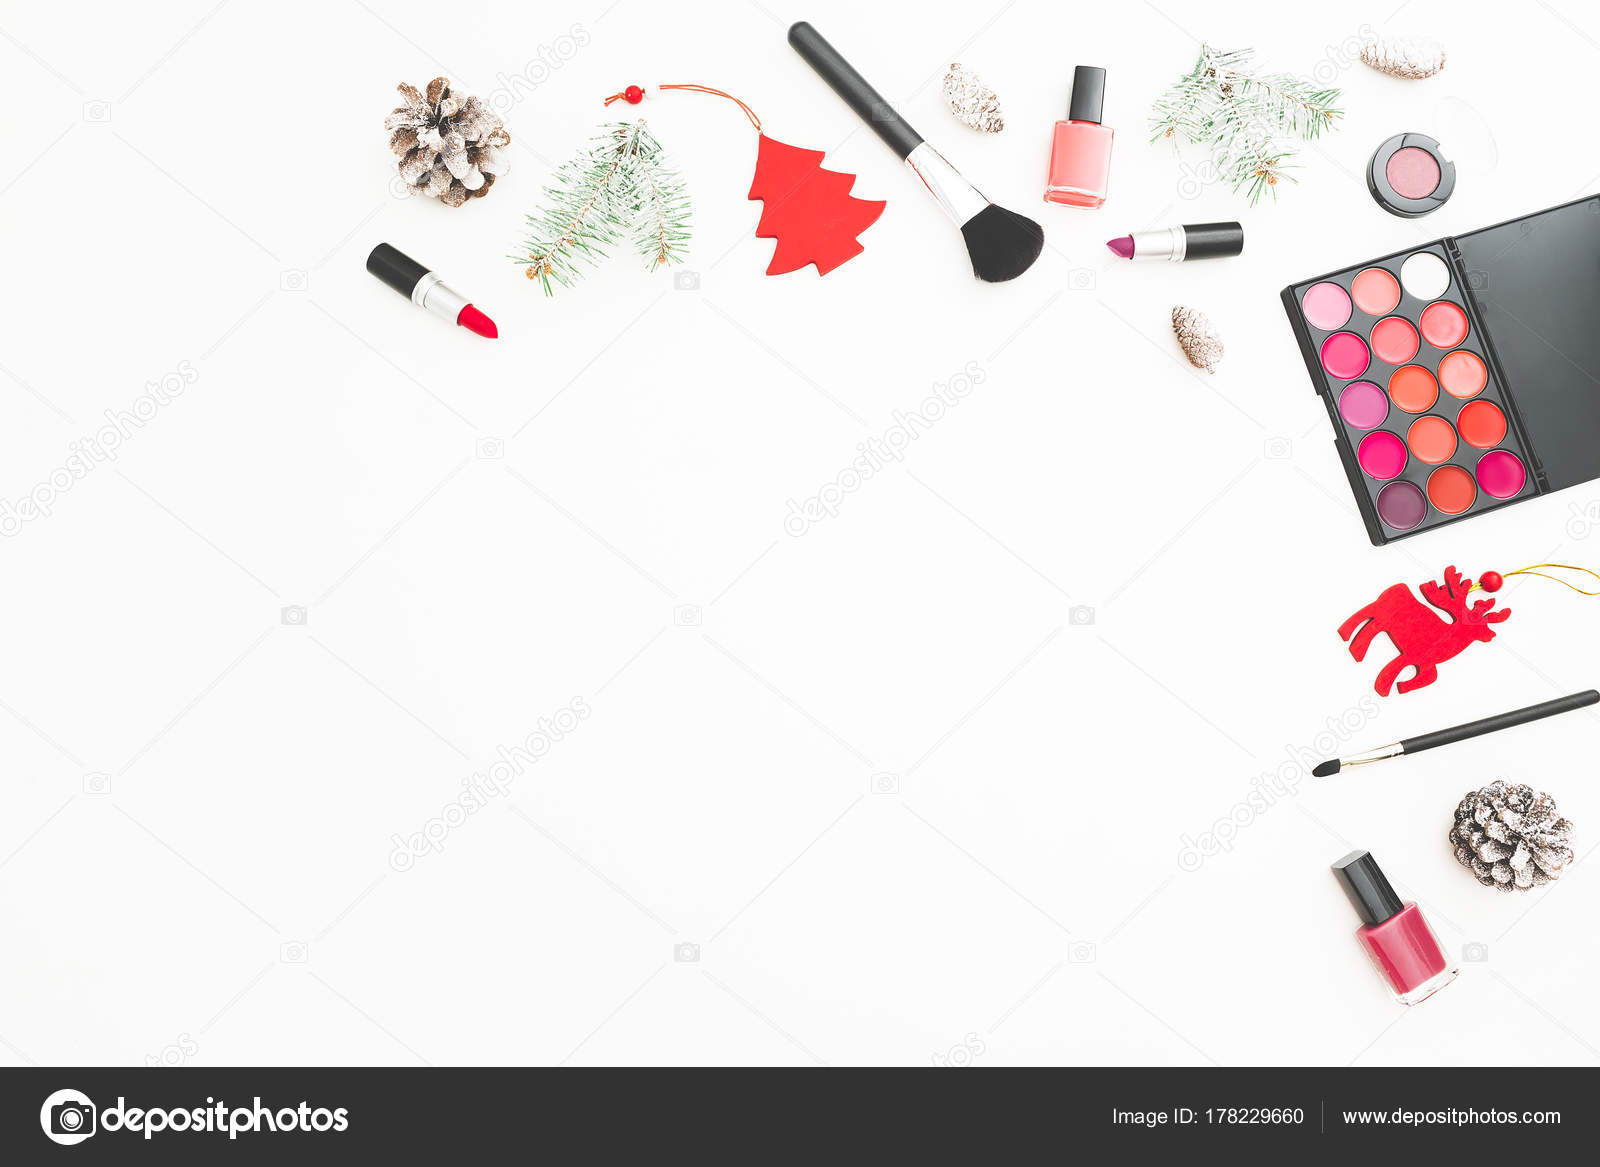 fashion desk cosmetics accessories new year decoration confetti white background stock photo